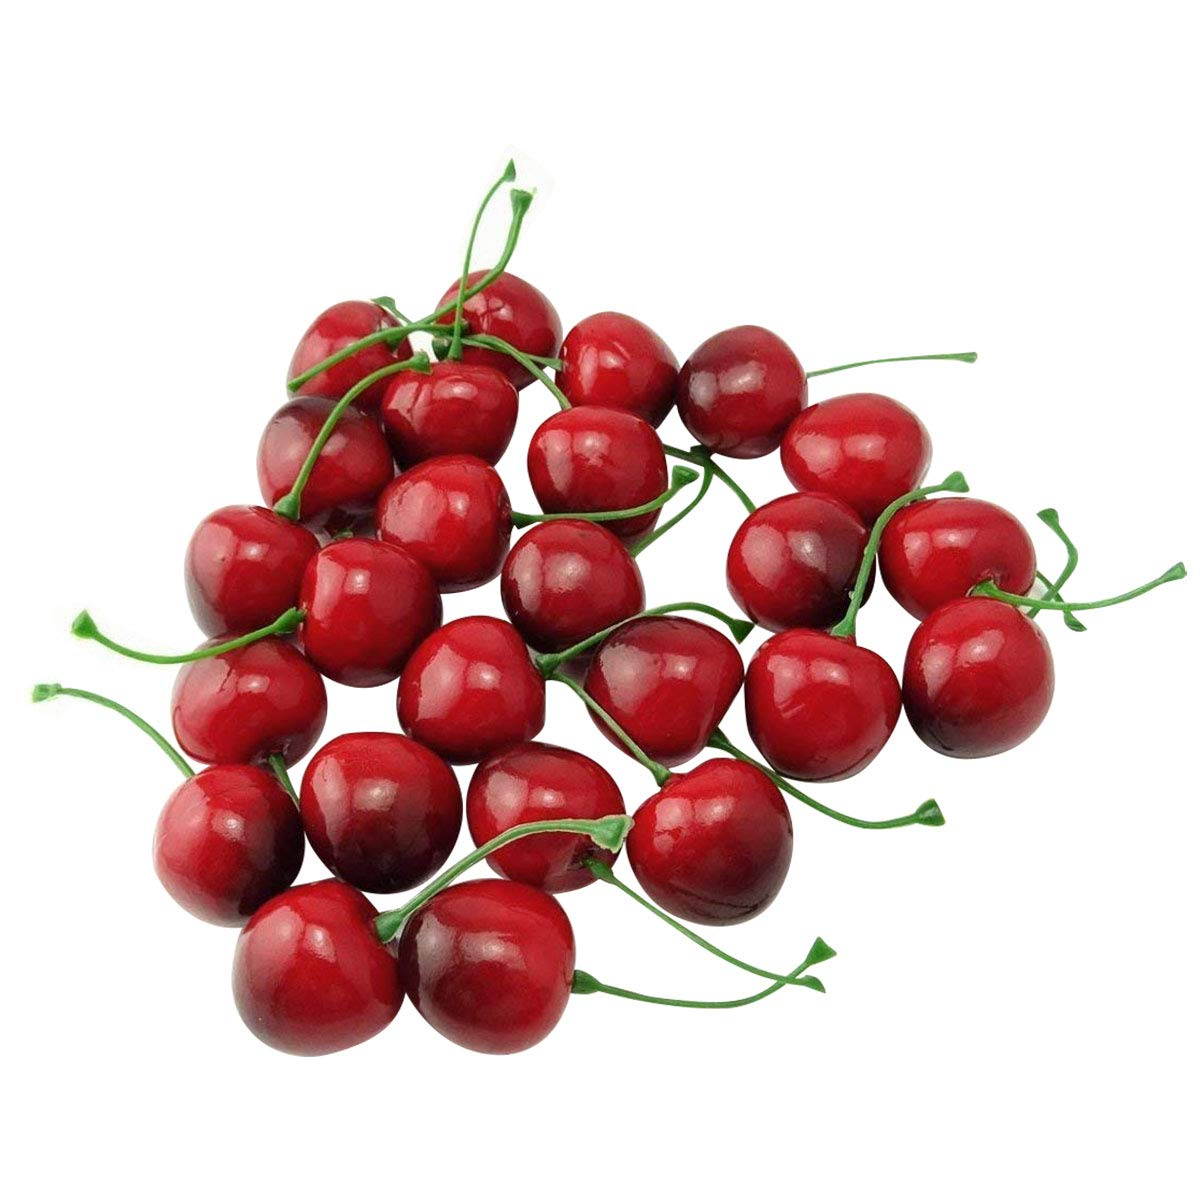 Artificial Cherries, Fake Red Cherries, Lifelike Fruit Model For Home Kitchen Party Decoration (Pack of 25) Zhichengbosi